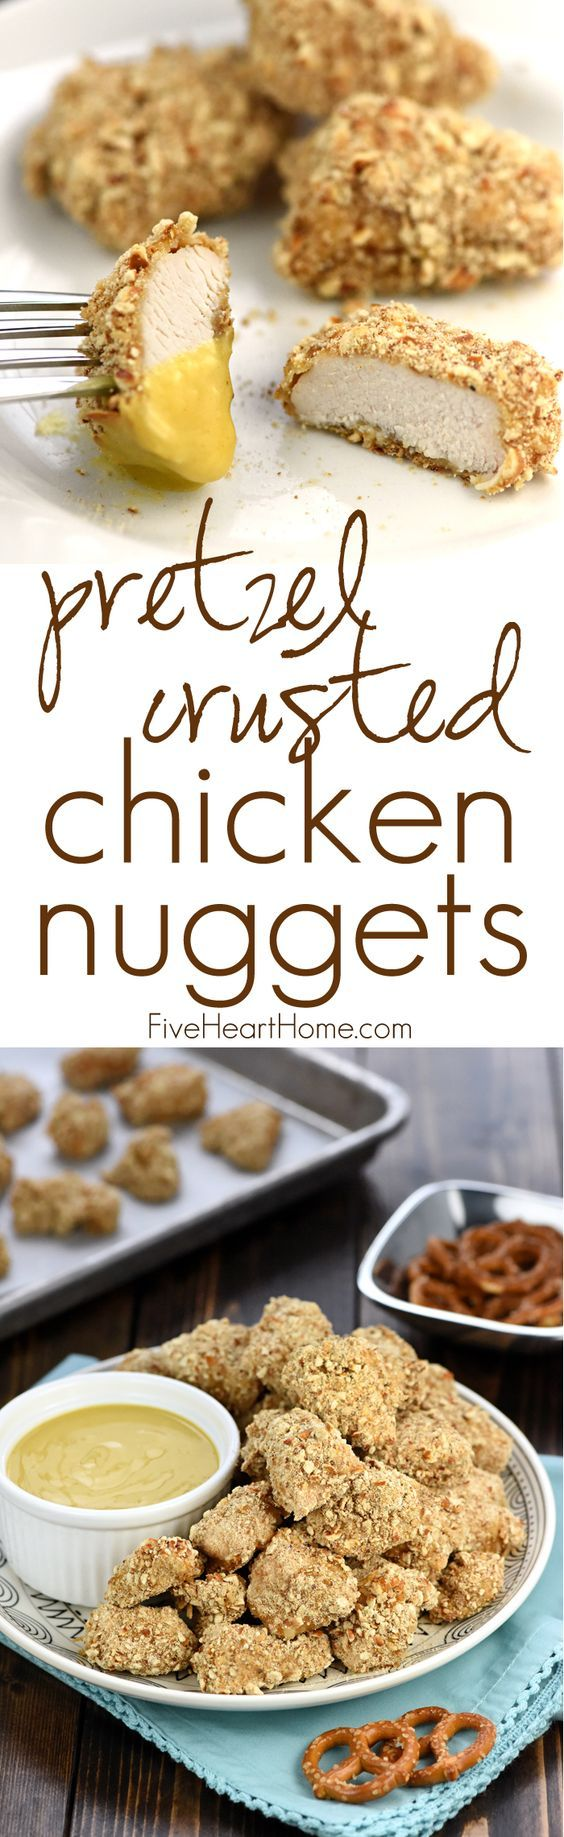 Pretzel-Crusted Chicken Nuggets with Honey Mustard Dipping Sauce ~ tender, juicy nuggets are baked to perfection and served with a lightened-up, Greek yogurt-based sauce for a simple, yummy, family-pleasing dinner! | FiveHeartHome.com: